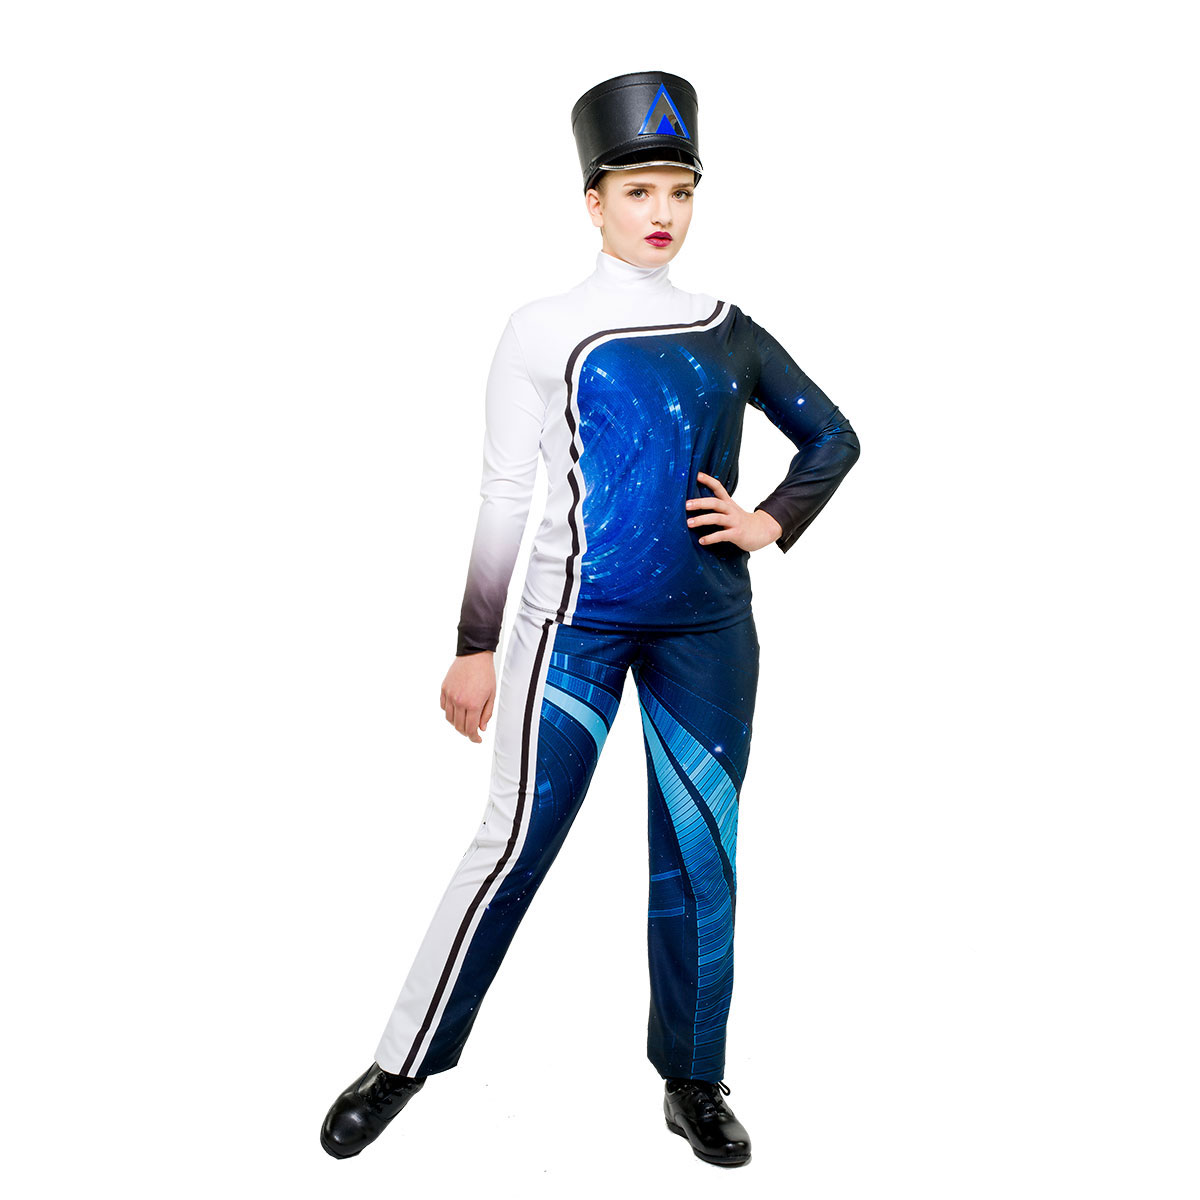 Digital Band Uniforms: Style 1801